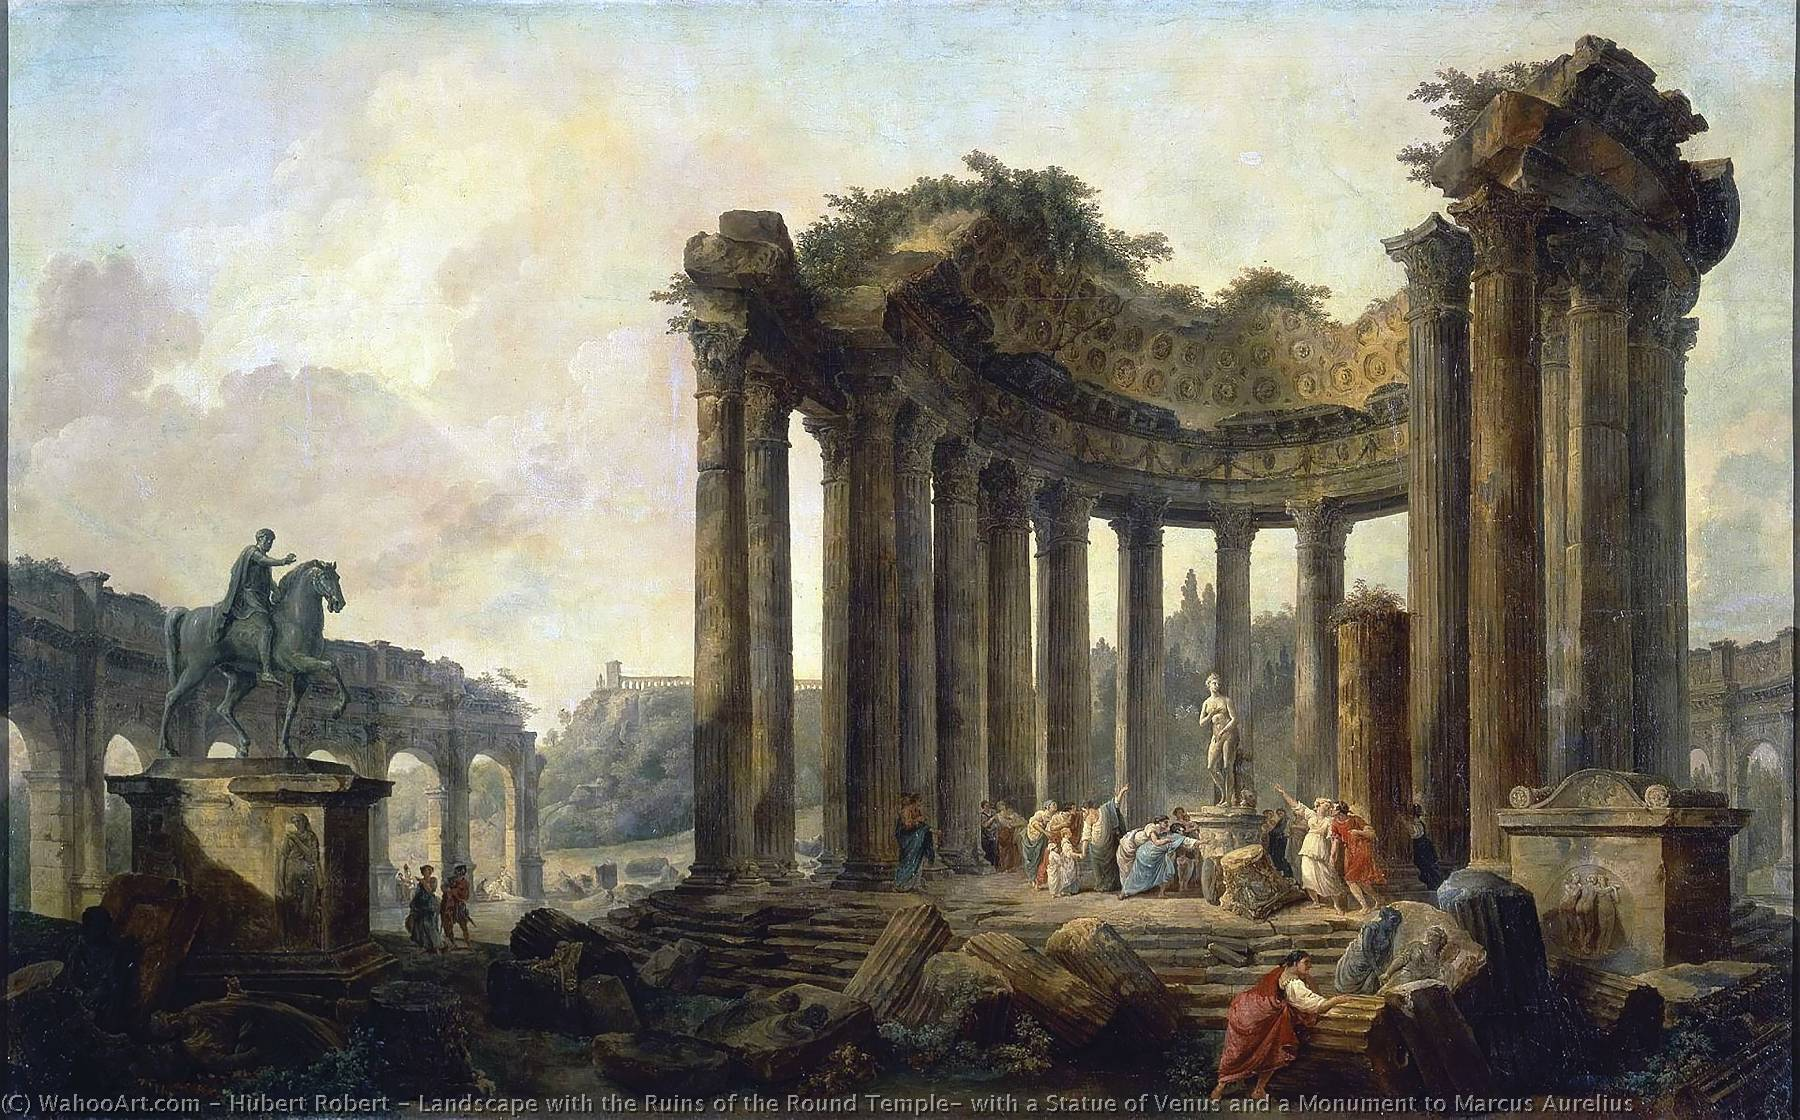 Landscape with the Ruins of the Round Temple, with a Statue of Venus and a Monument to Marcus Aurelius by Hubert Robert (1733-1808, France)